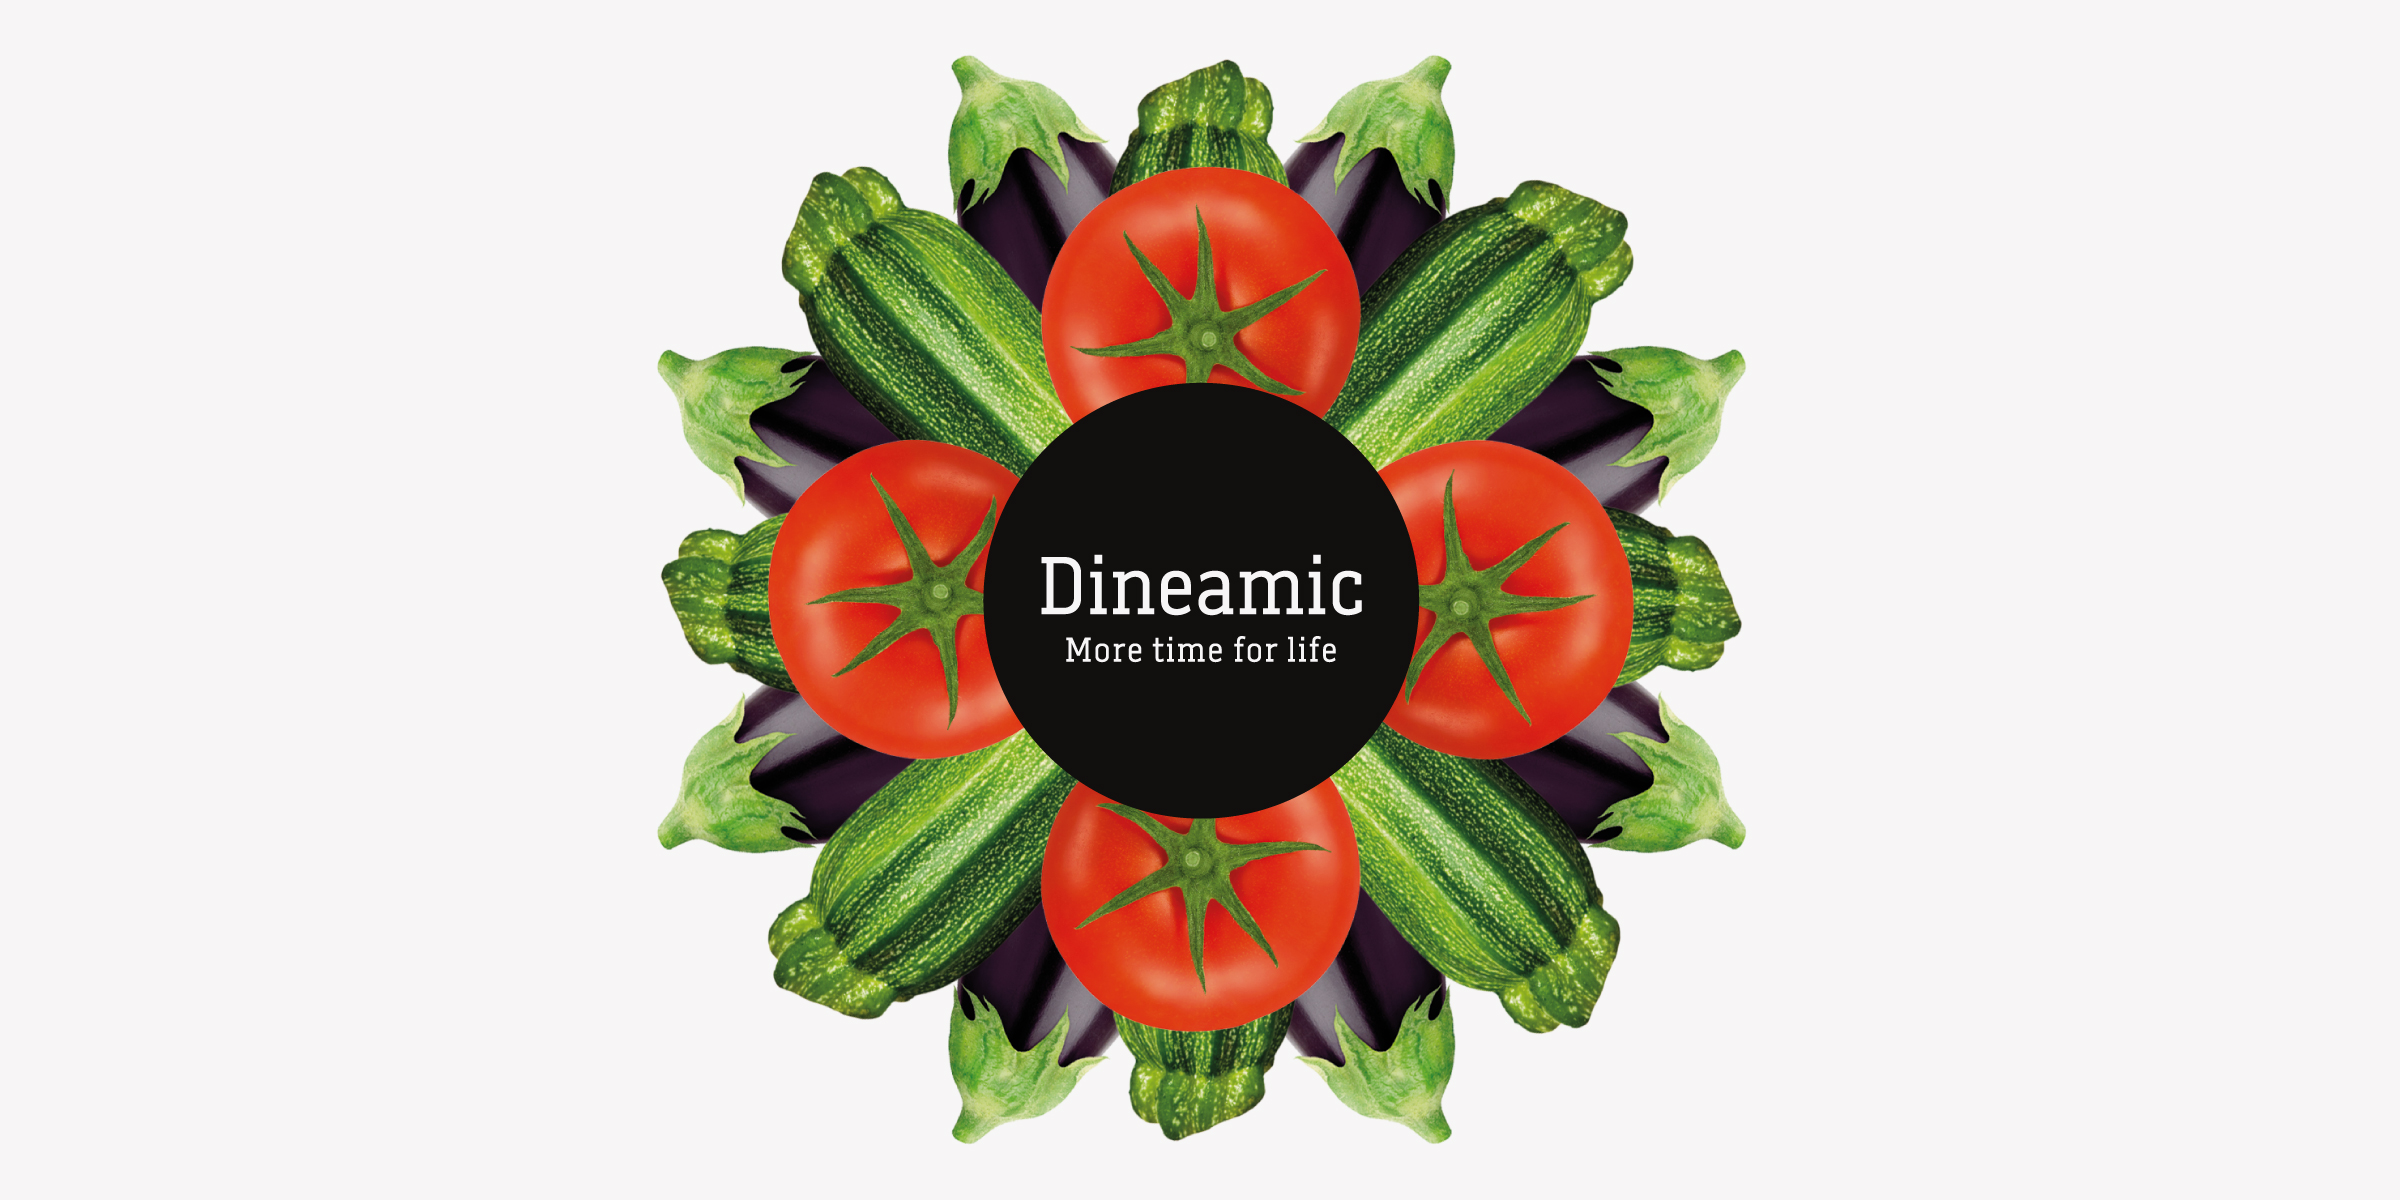 Davidson Branding FMCG Dineamic Packaging Visual Language Kaleidoscope Tomato Zucchini Banner